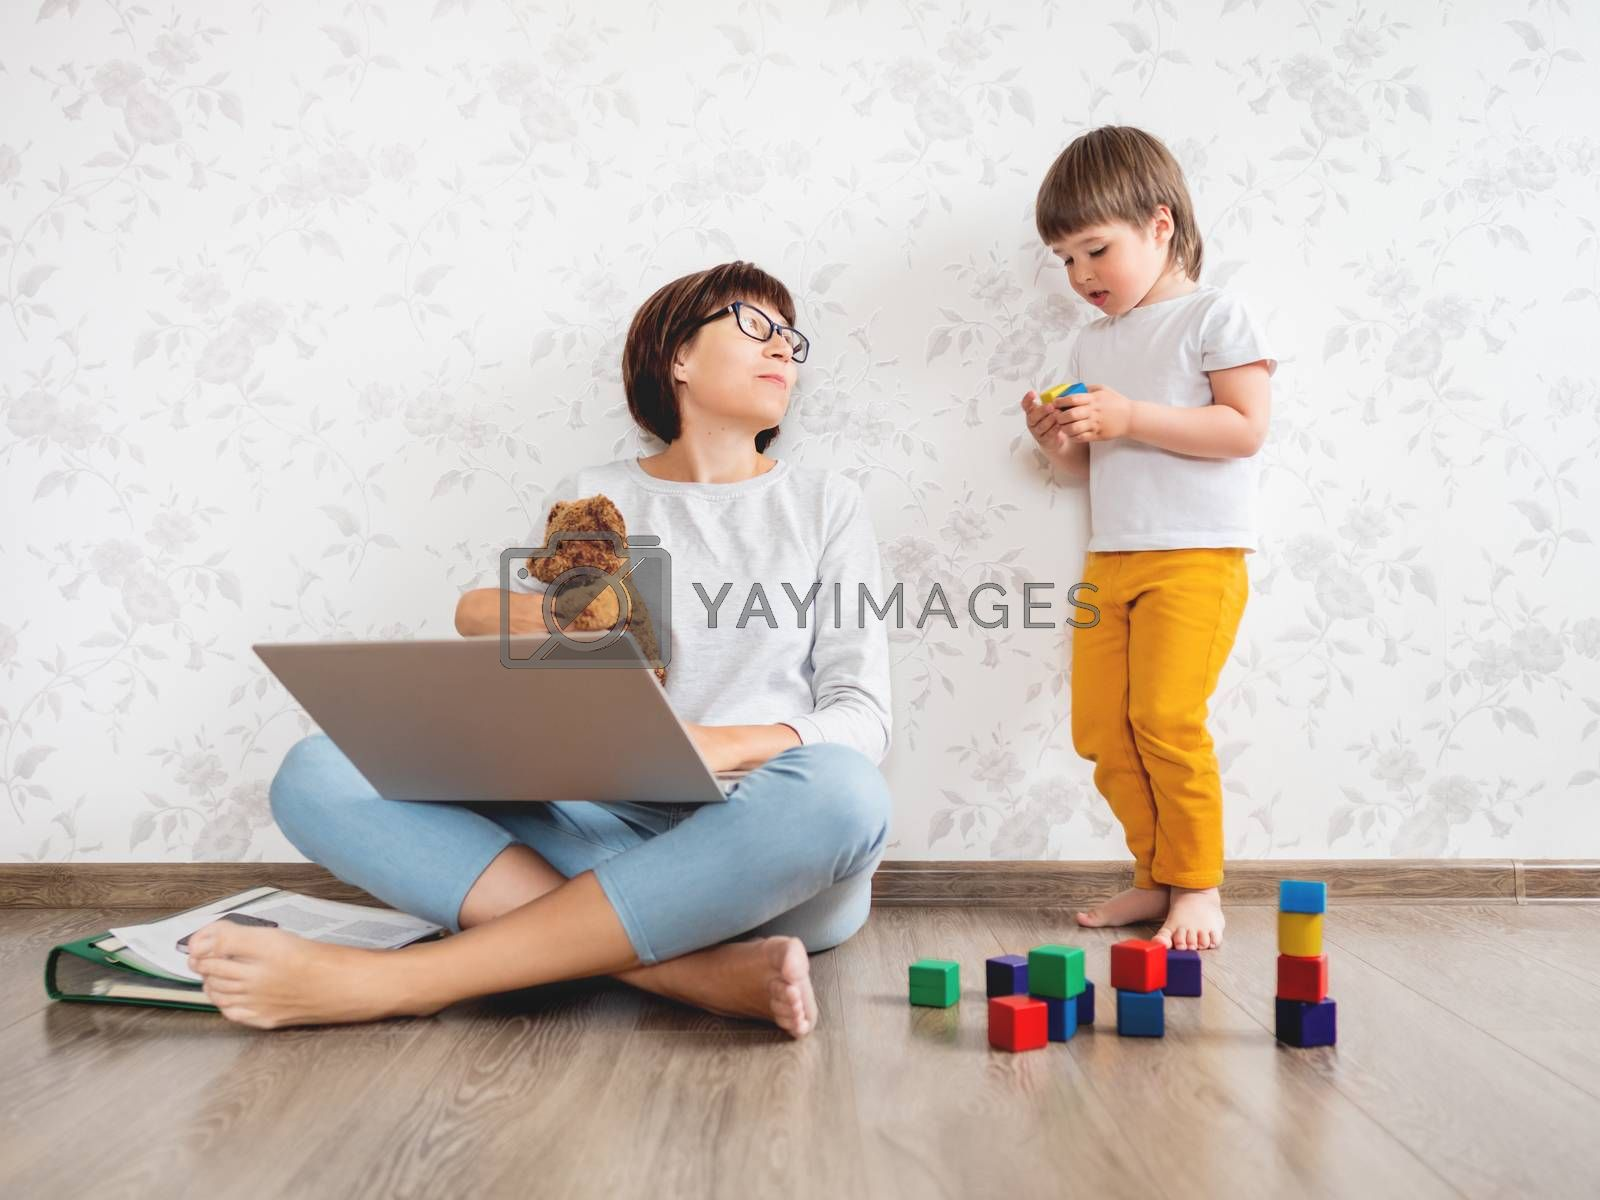 Mom and son at home. Mother works remotely with laptop, son plays near her. Freelance work in same time with raising children.